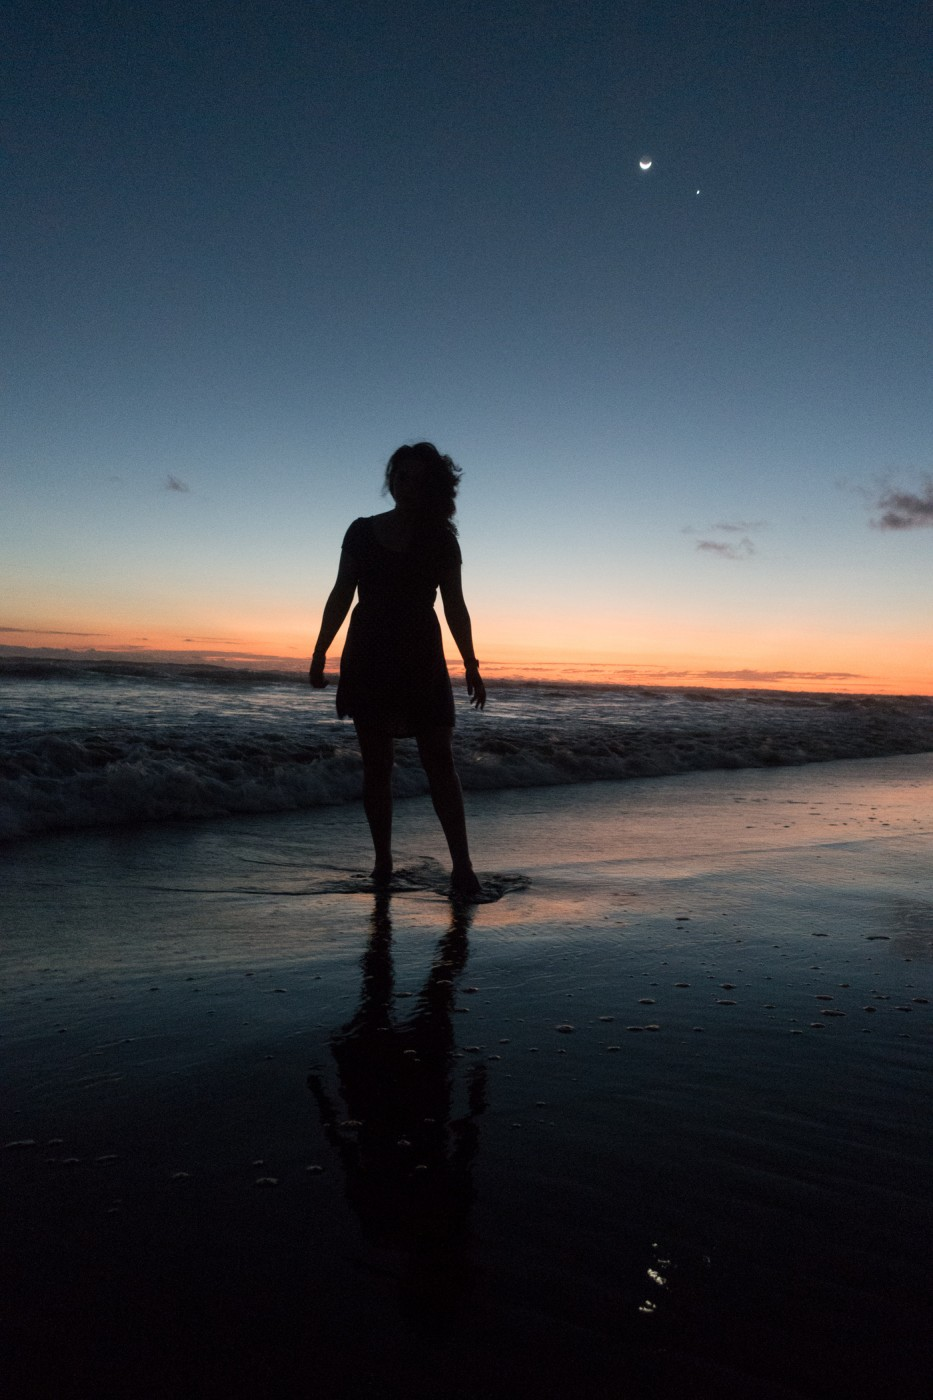 Sony RX-100 III photography sample: woman's silhouette on beach at sunset